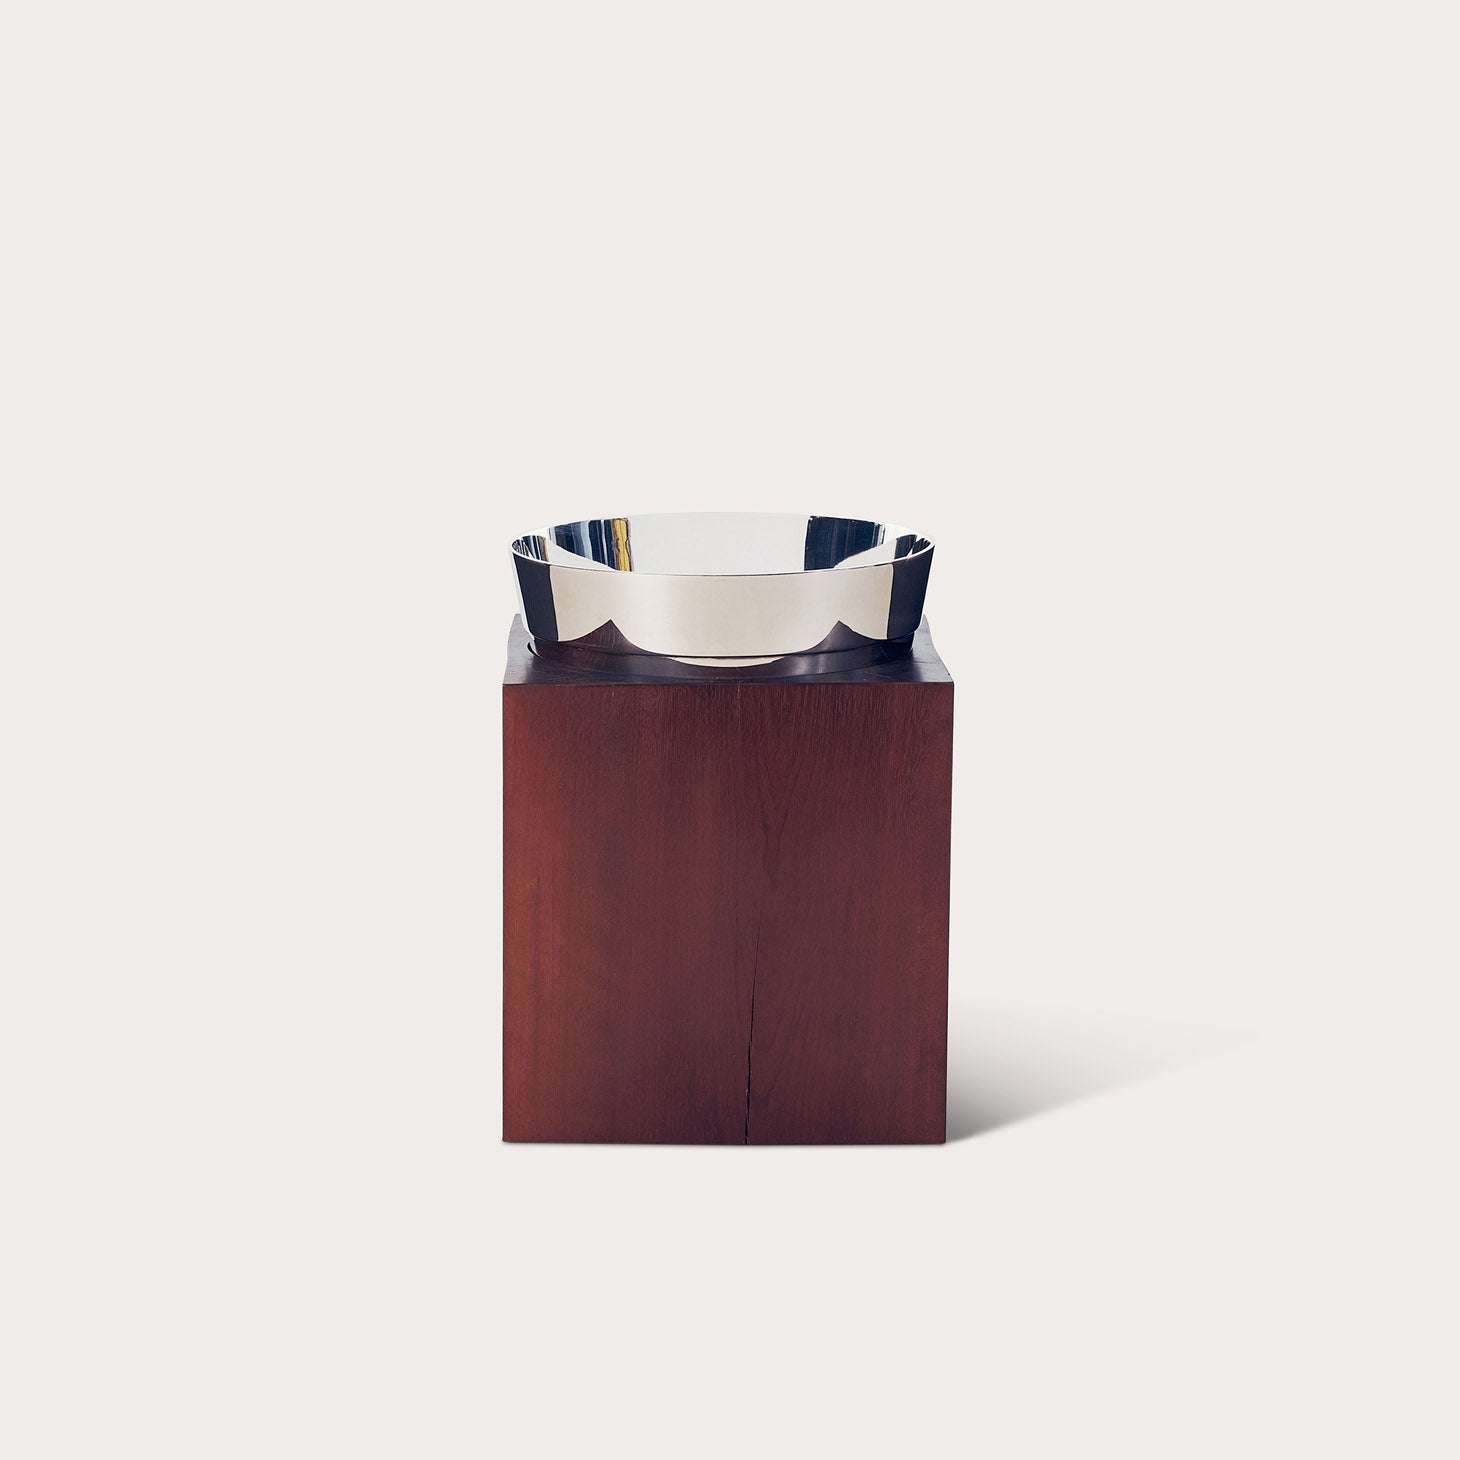 Isay Accessories Isay Weinfeld Designer Furniture Sku: 003-100-10002